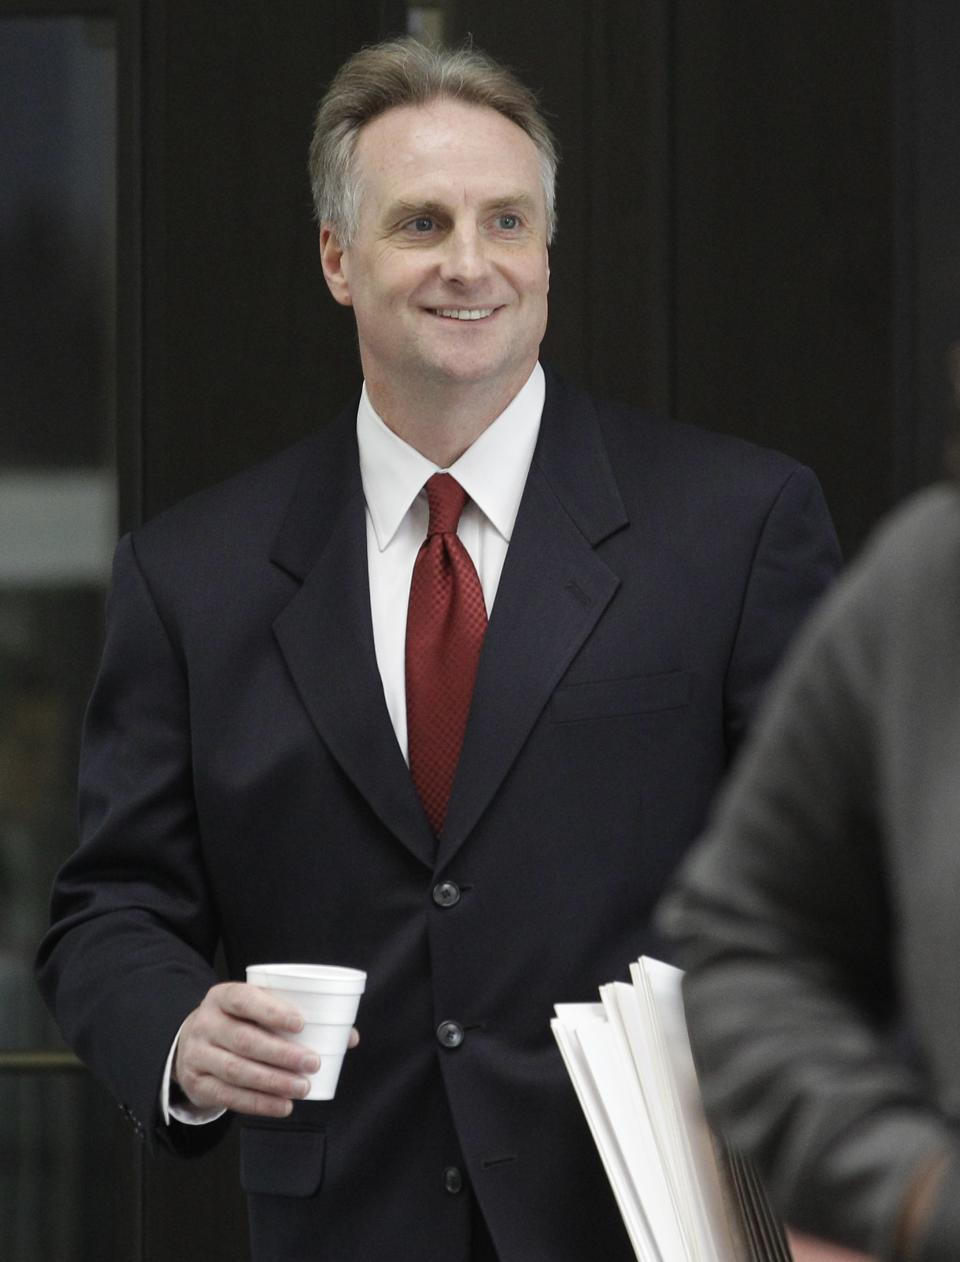 James McKay, lead prosecutor in the William Balfour murder trial arrives at  Cook County Criminal Court, Wednesday, May 9, 2012, in Chicago as closing arguments are set to begin. Balfour, is charged in the 2008 murder of Oscar and Grammy winning performer Jennifer Hudson's mother, brother and nephew. (AP Photo/M. Spencer Green)